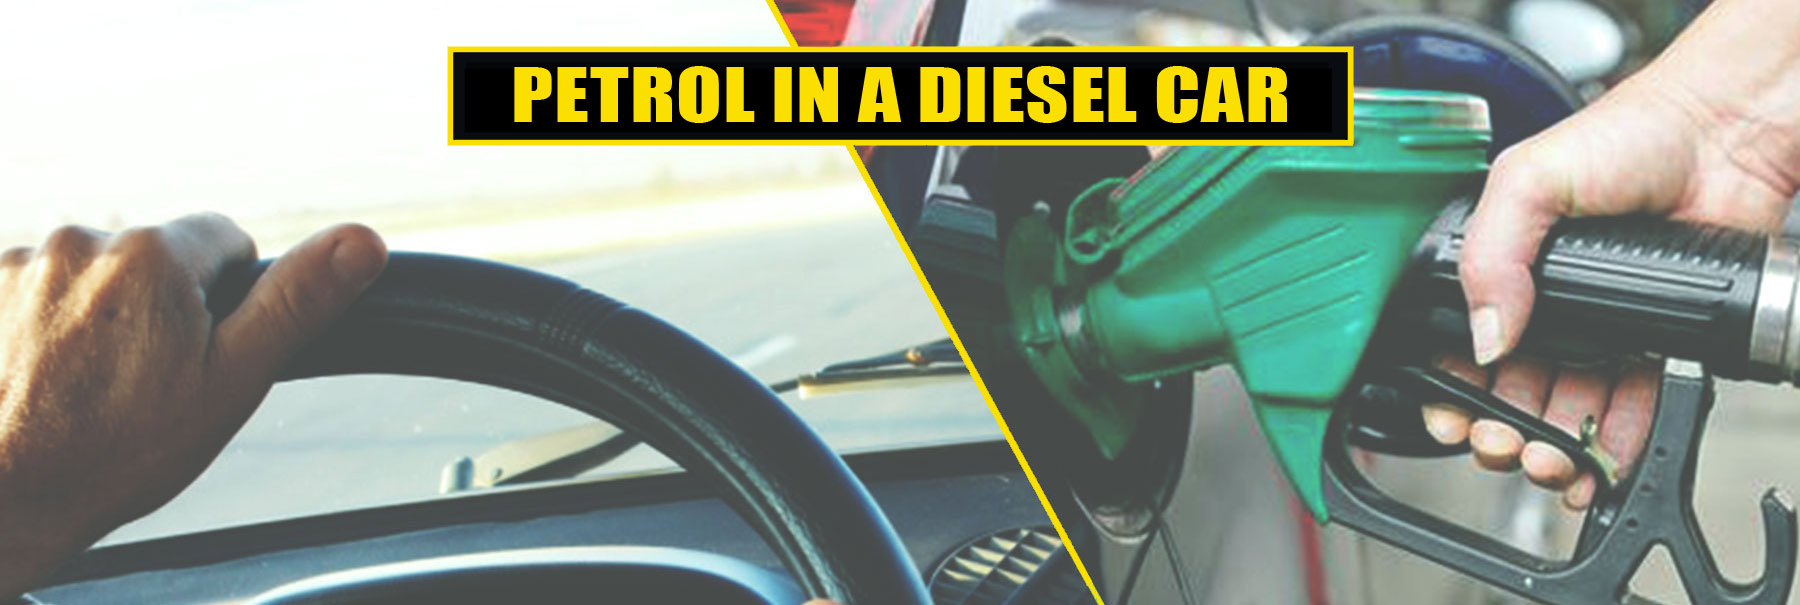 Continue on the wagon with the petrol in diesel car service